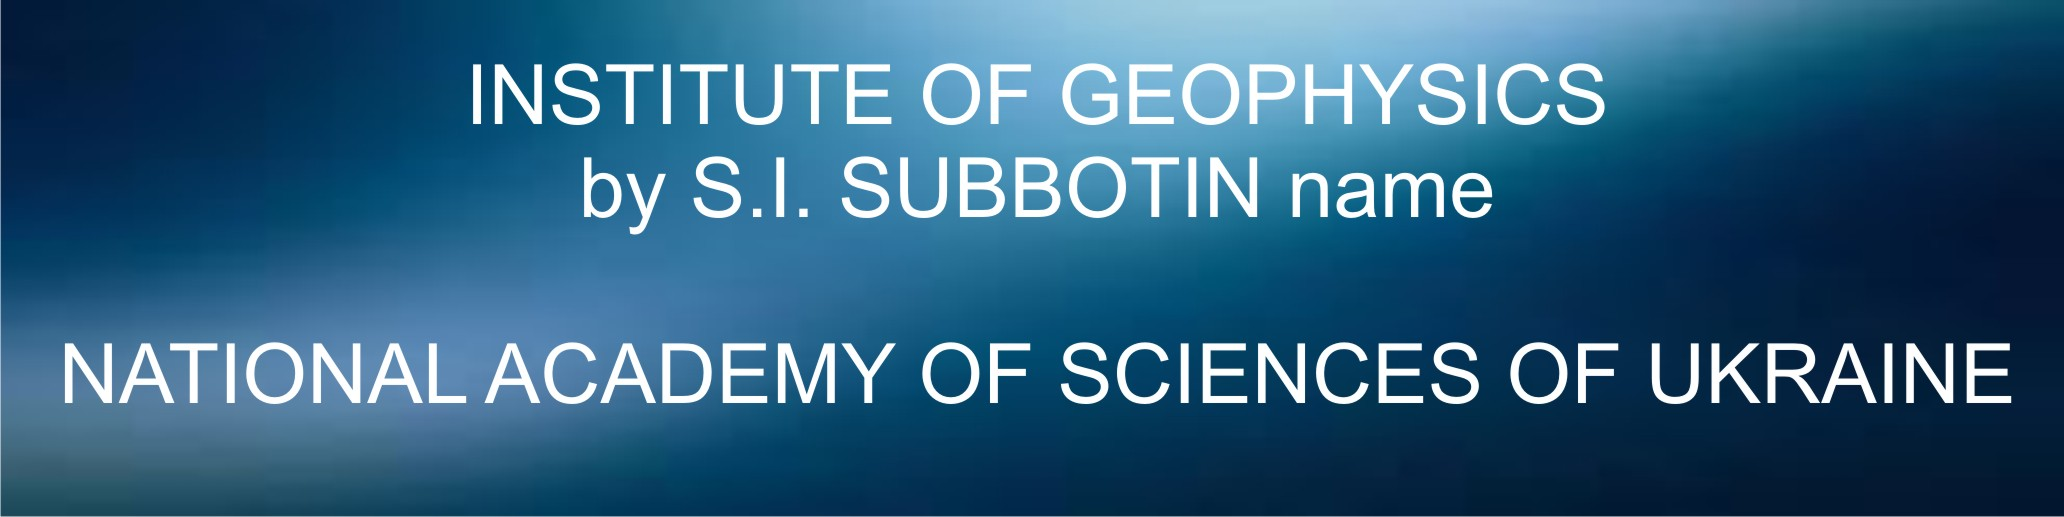 Institute of Geophysics National Academy of Sciences of Ukraine